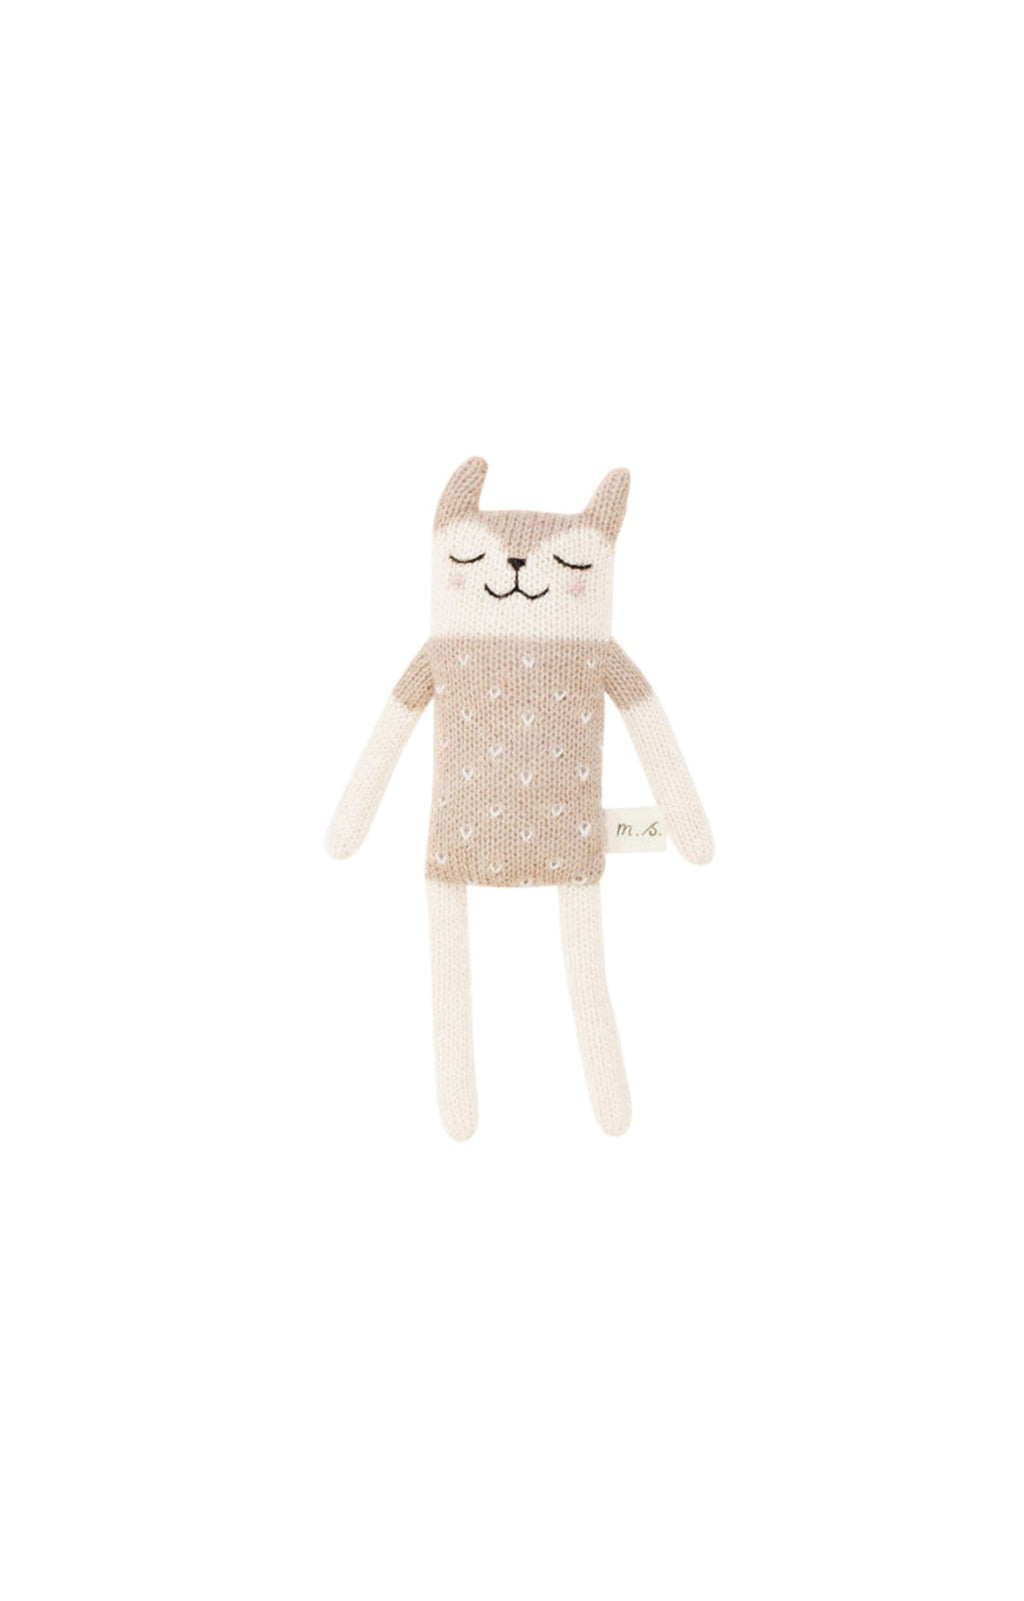 Main Sauvage fawn knit toy Sand (PRE-ORDER NOV) - Hello Little Birdie